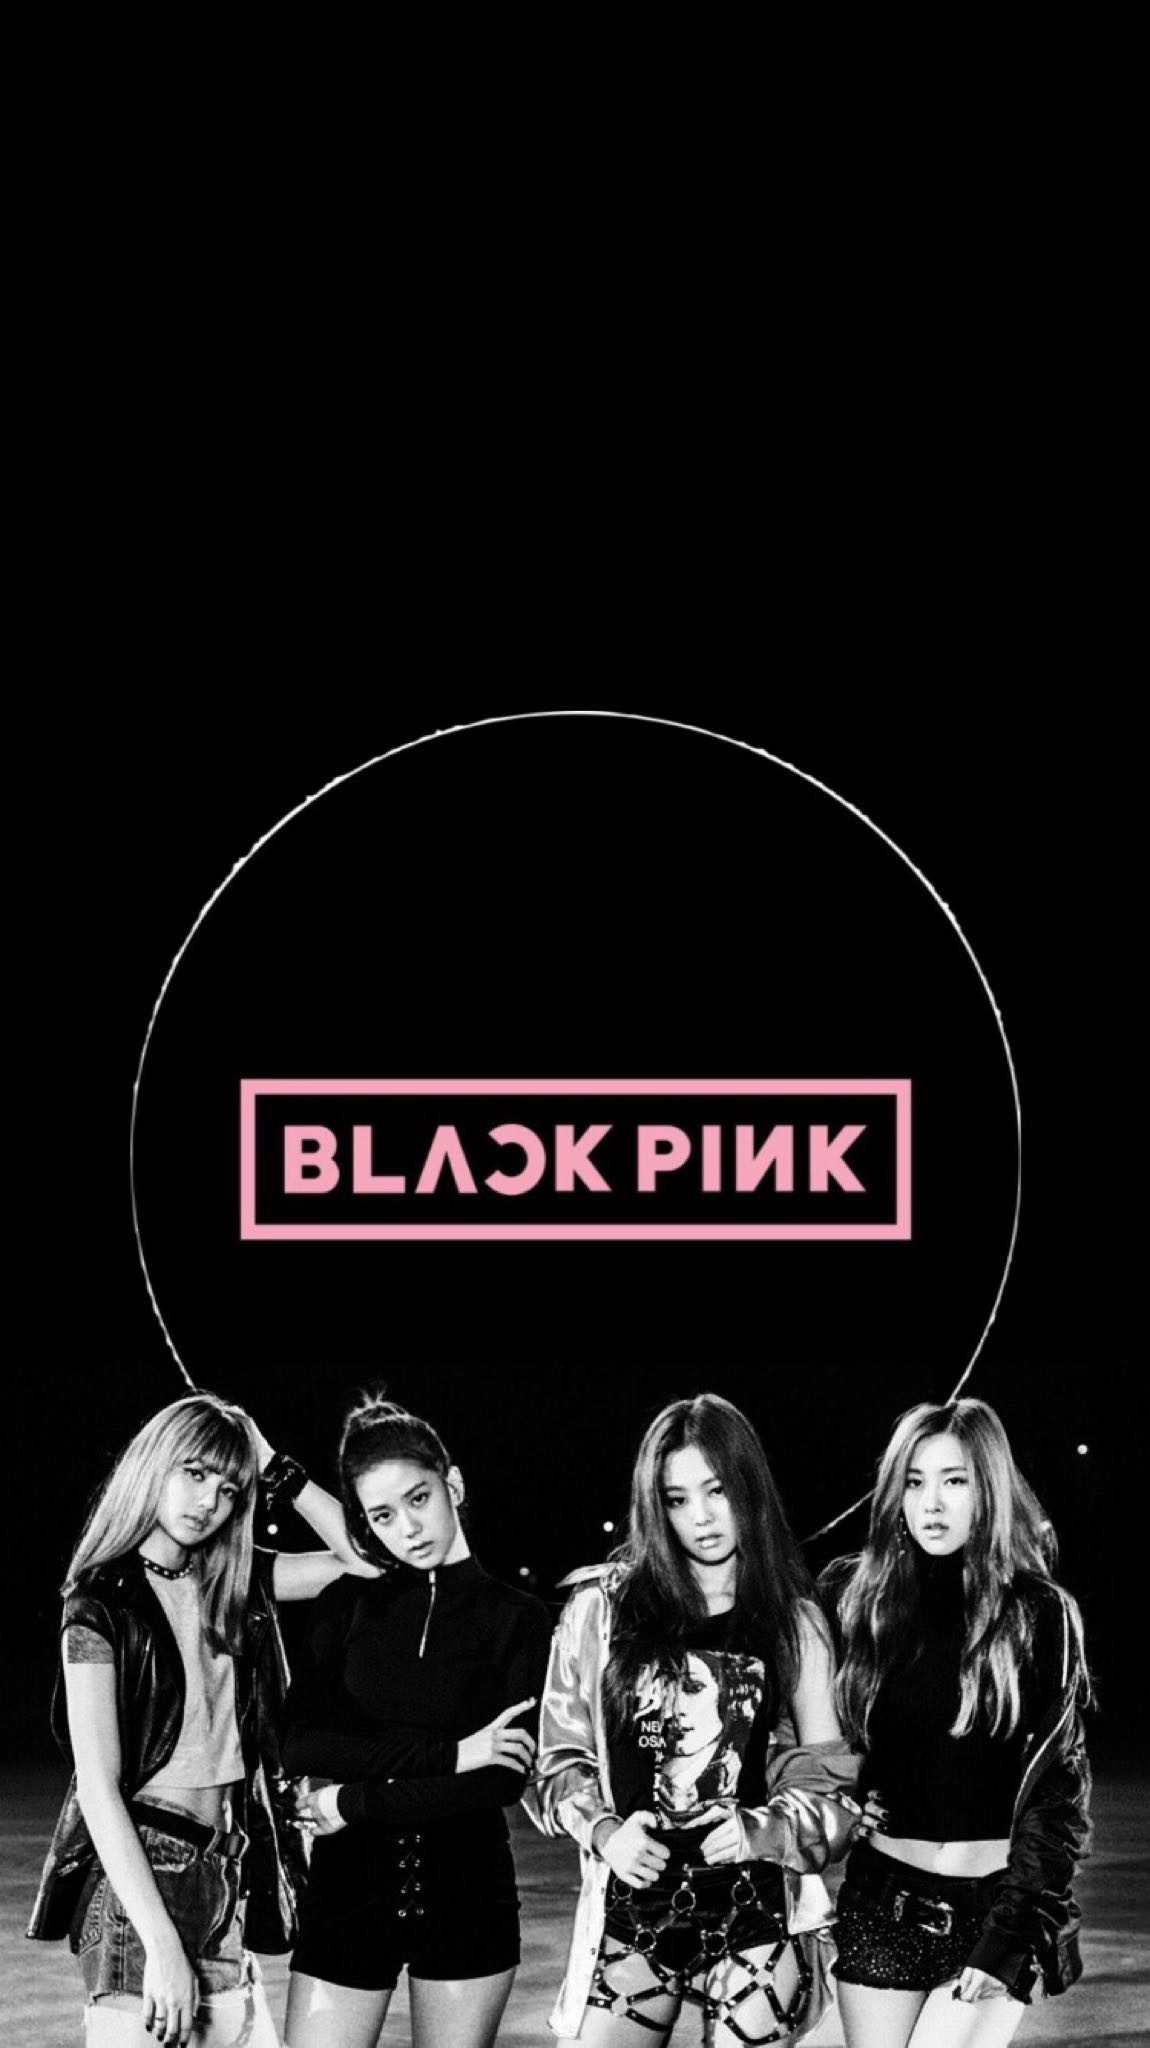 Blackpink Wallpaper Blackpink Live Wallpaper Iphone 1150x2048 Download Hd Wallpaper Wallpapertip